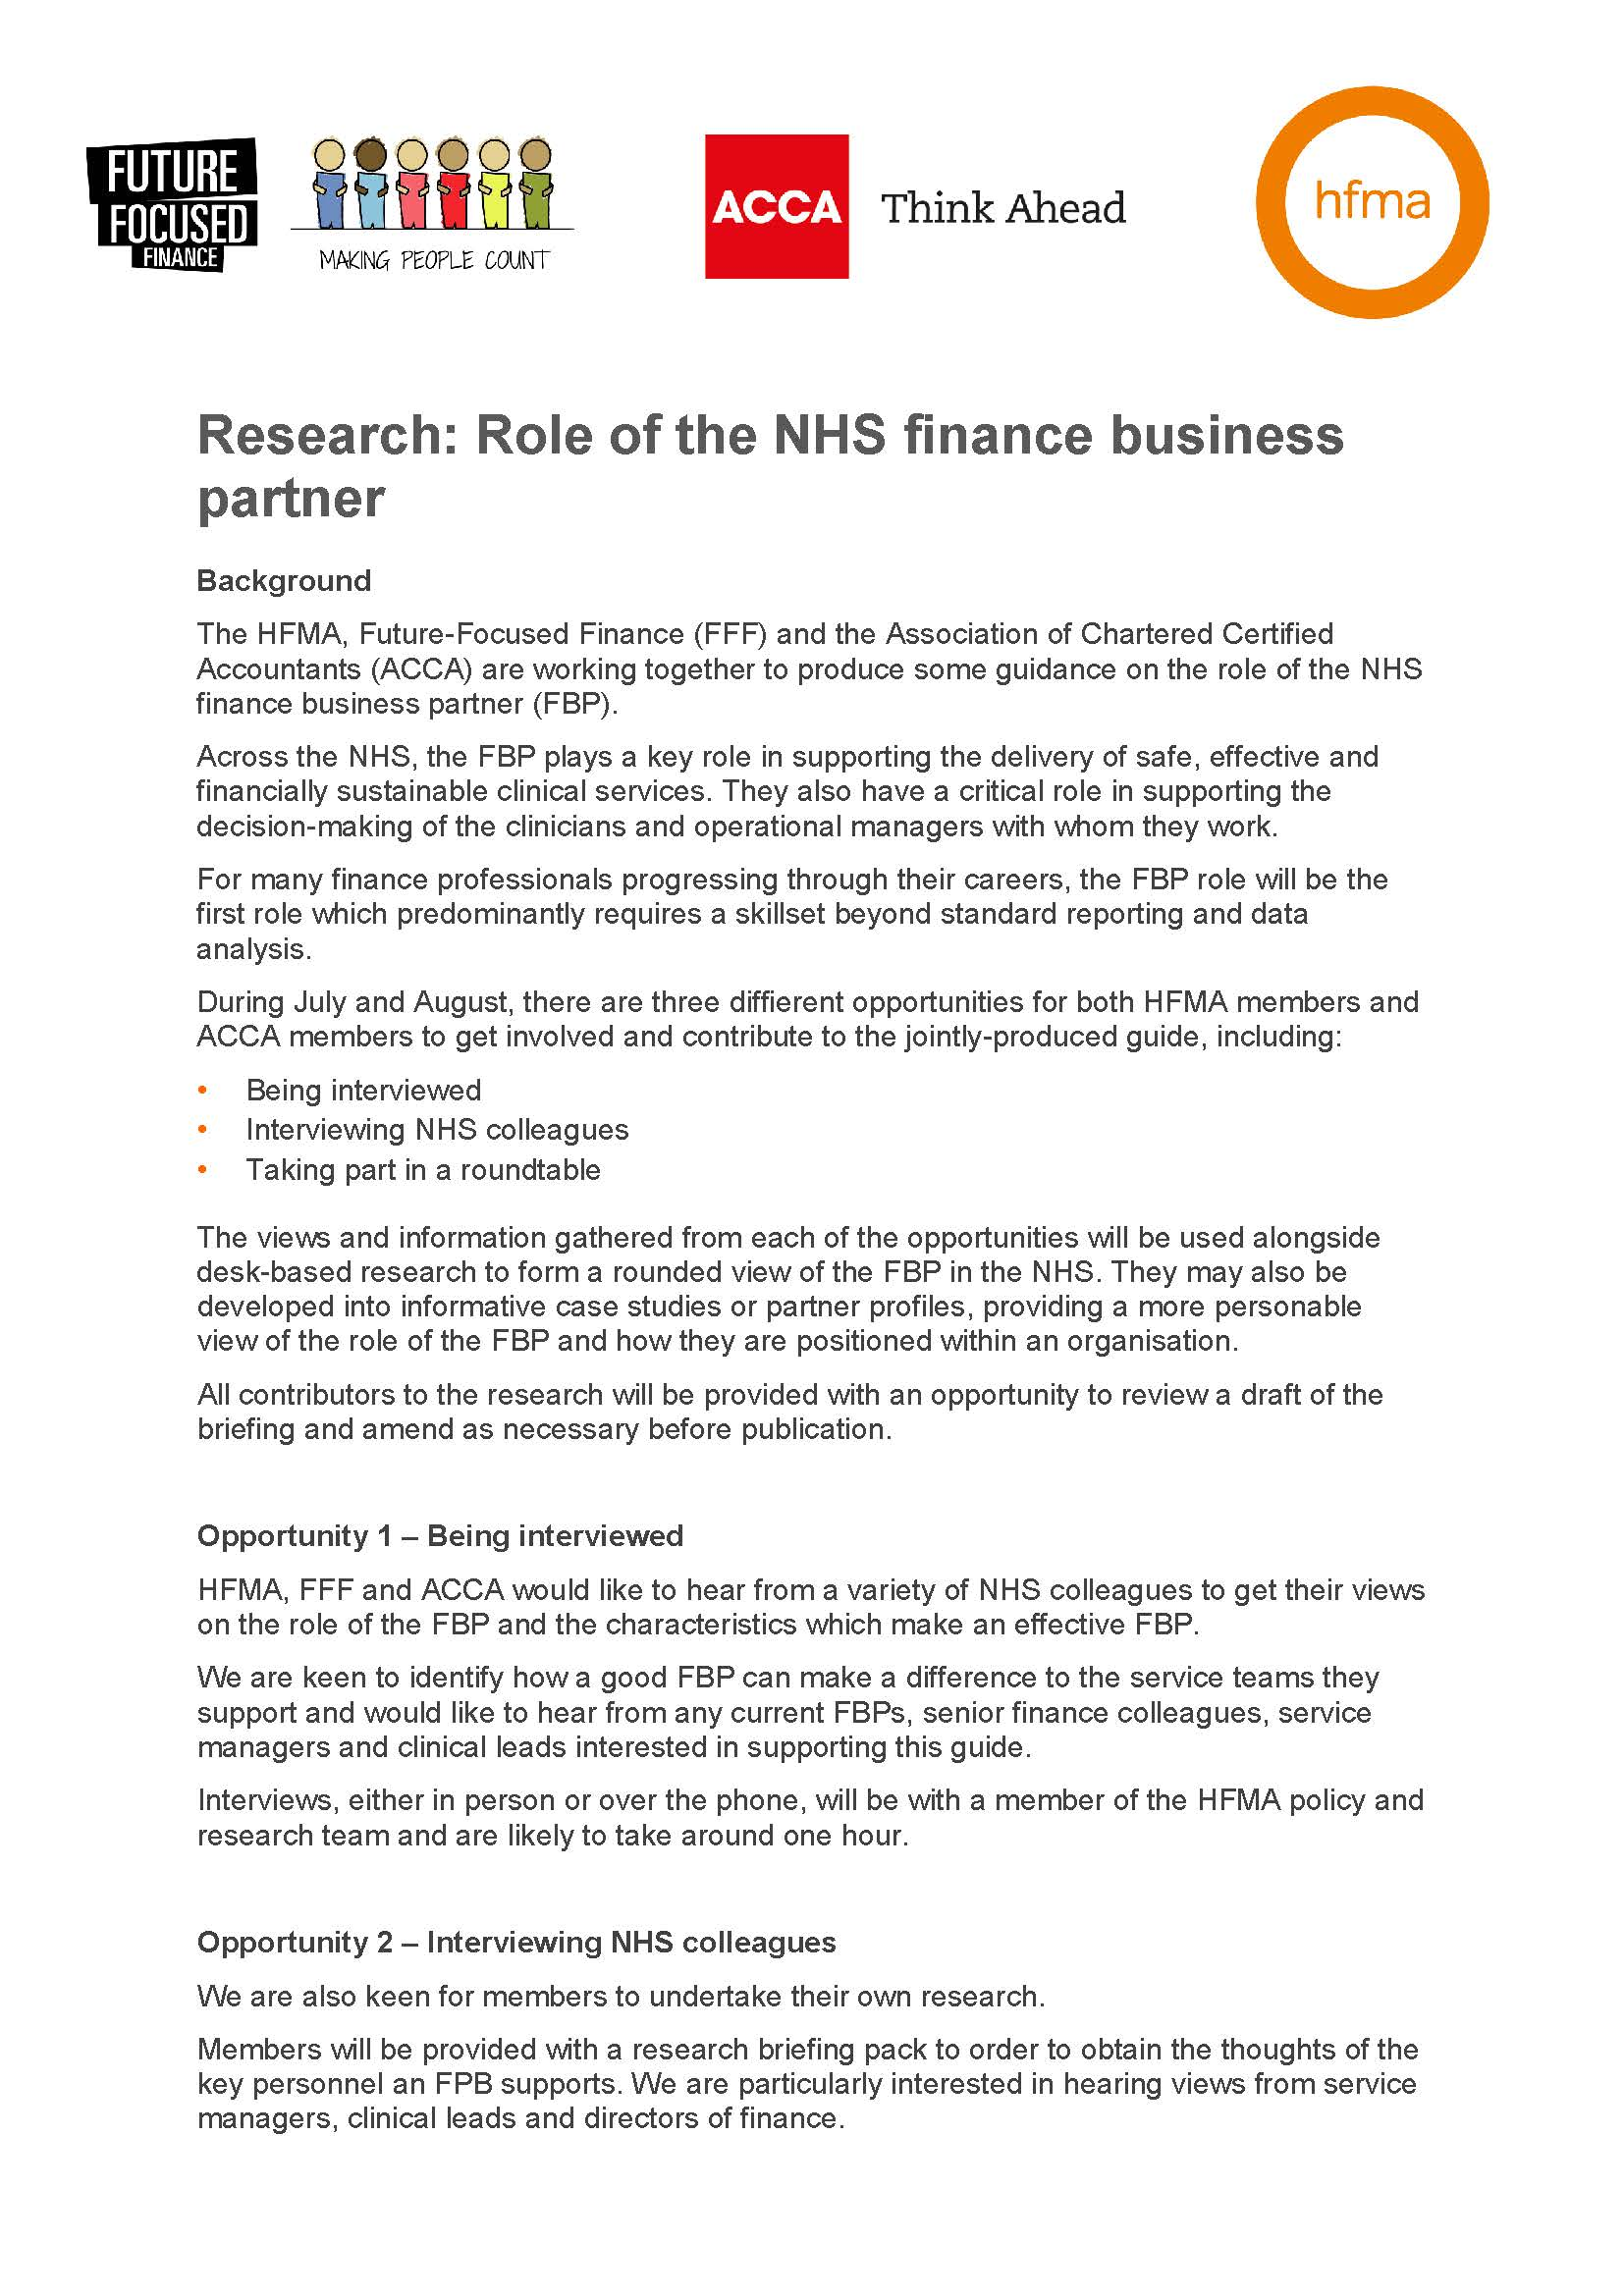 Role of the NHS finance business partner